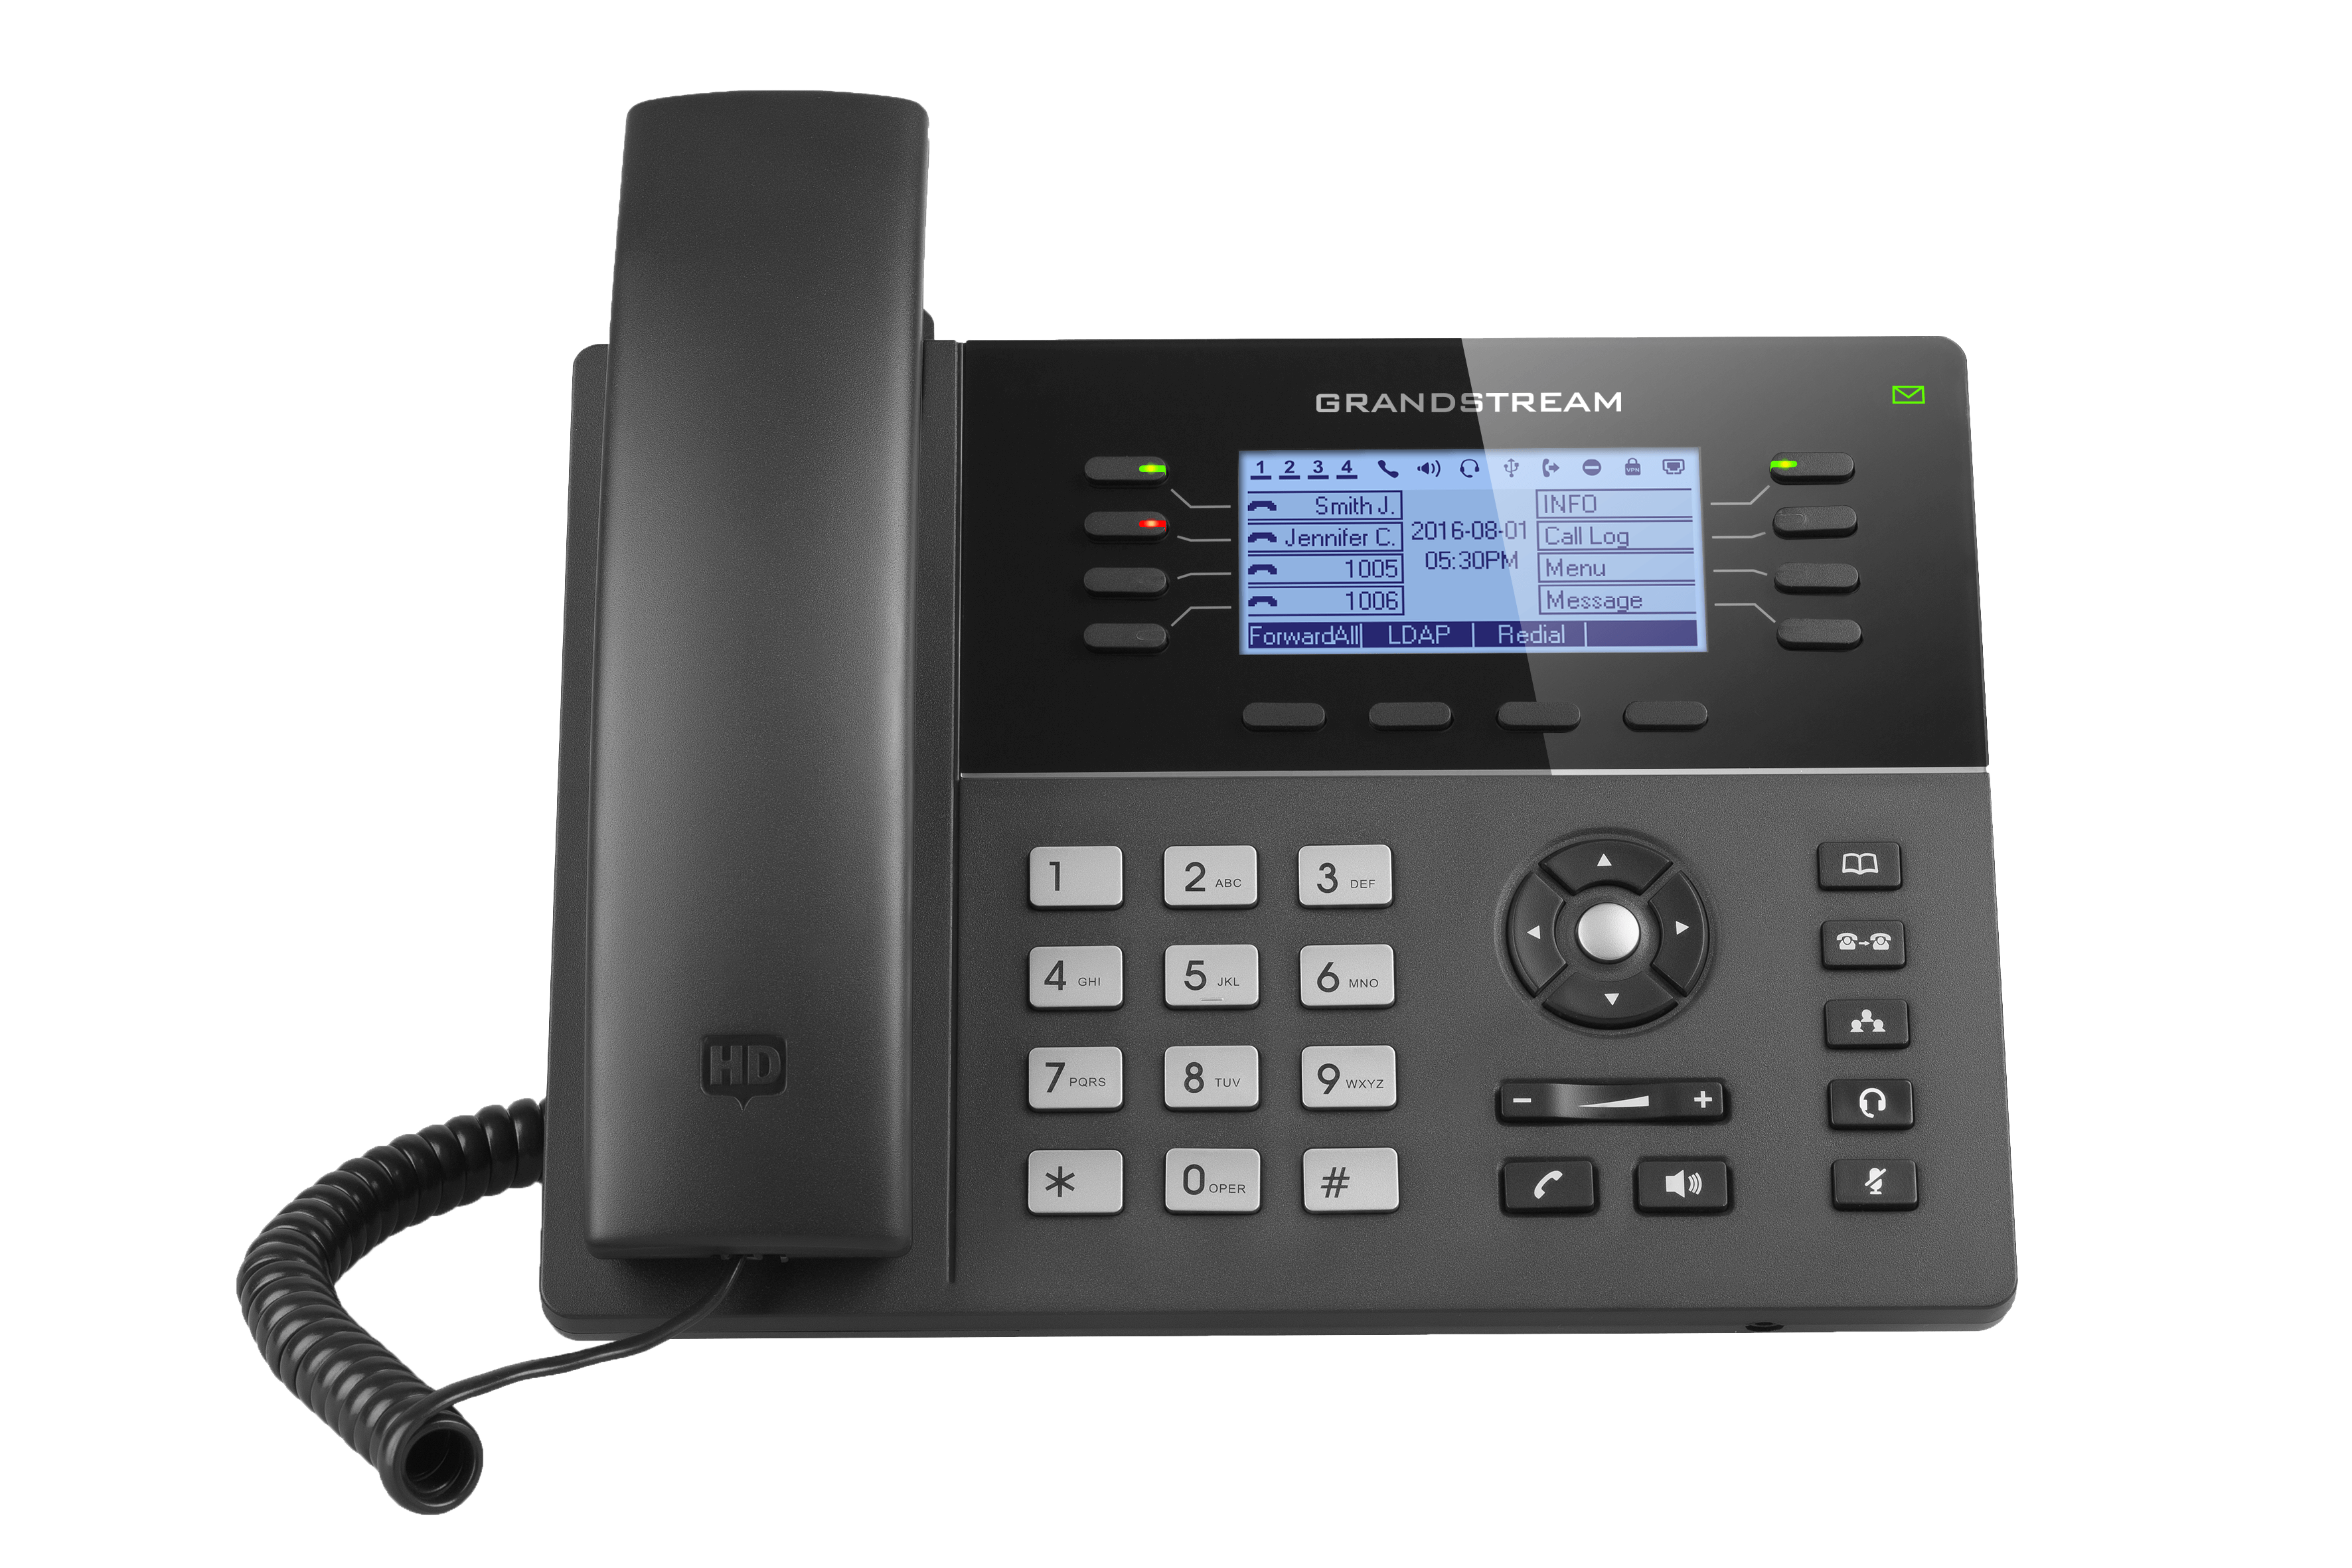 Grandstream GXP1700 series Mid-Range IP Phones